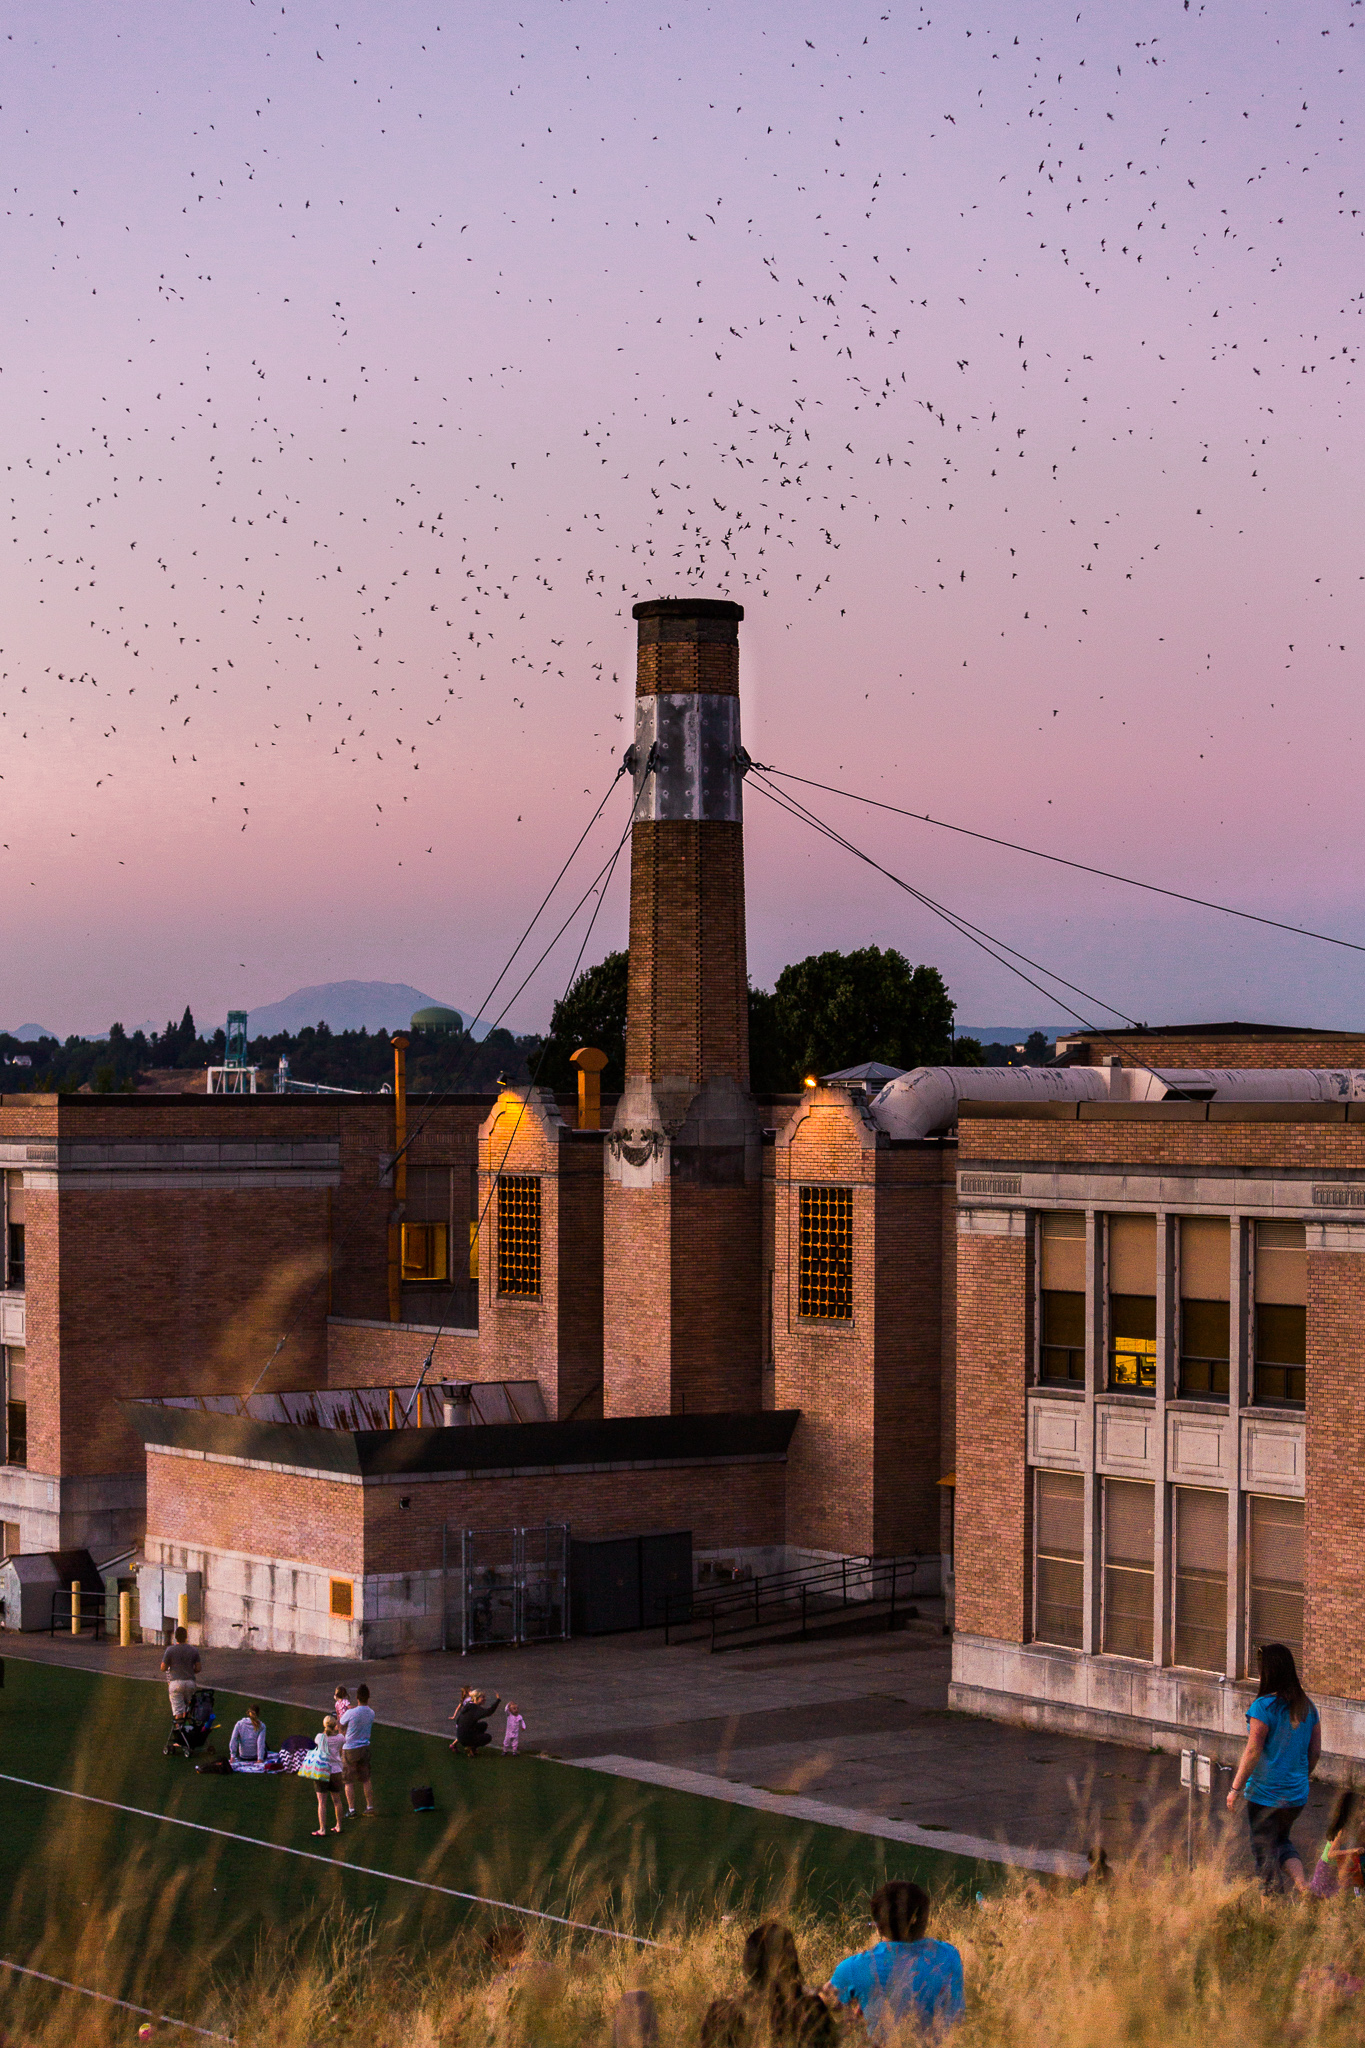 Swifts Flying 01_web res.jpg